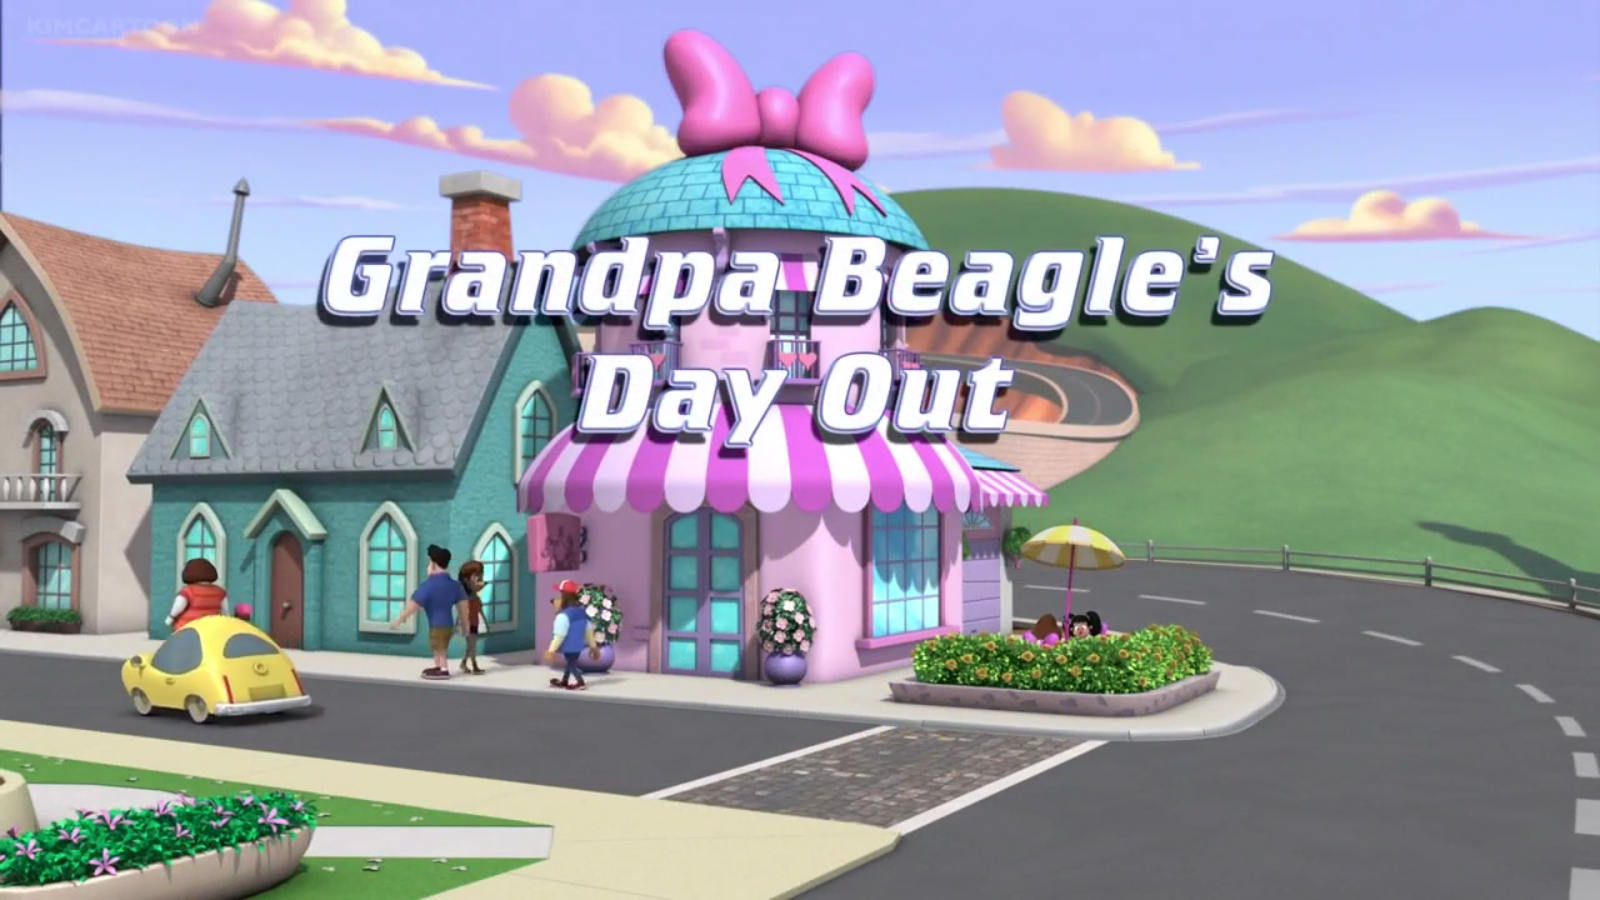 Grandpa Beagle's Day Out